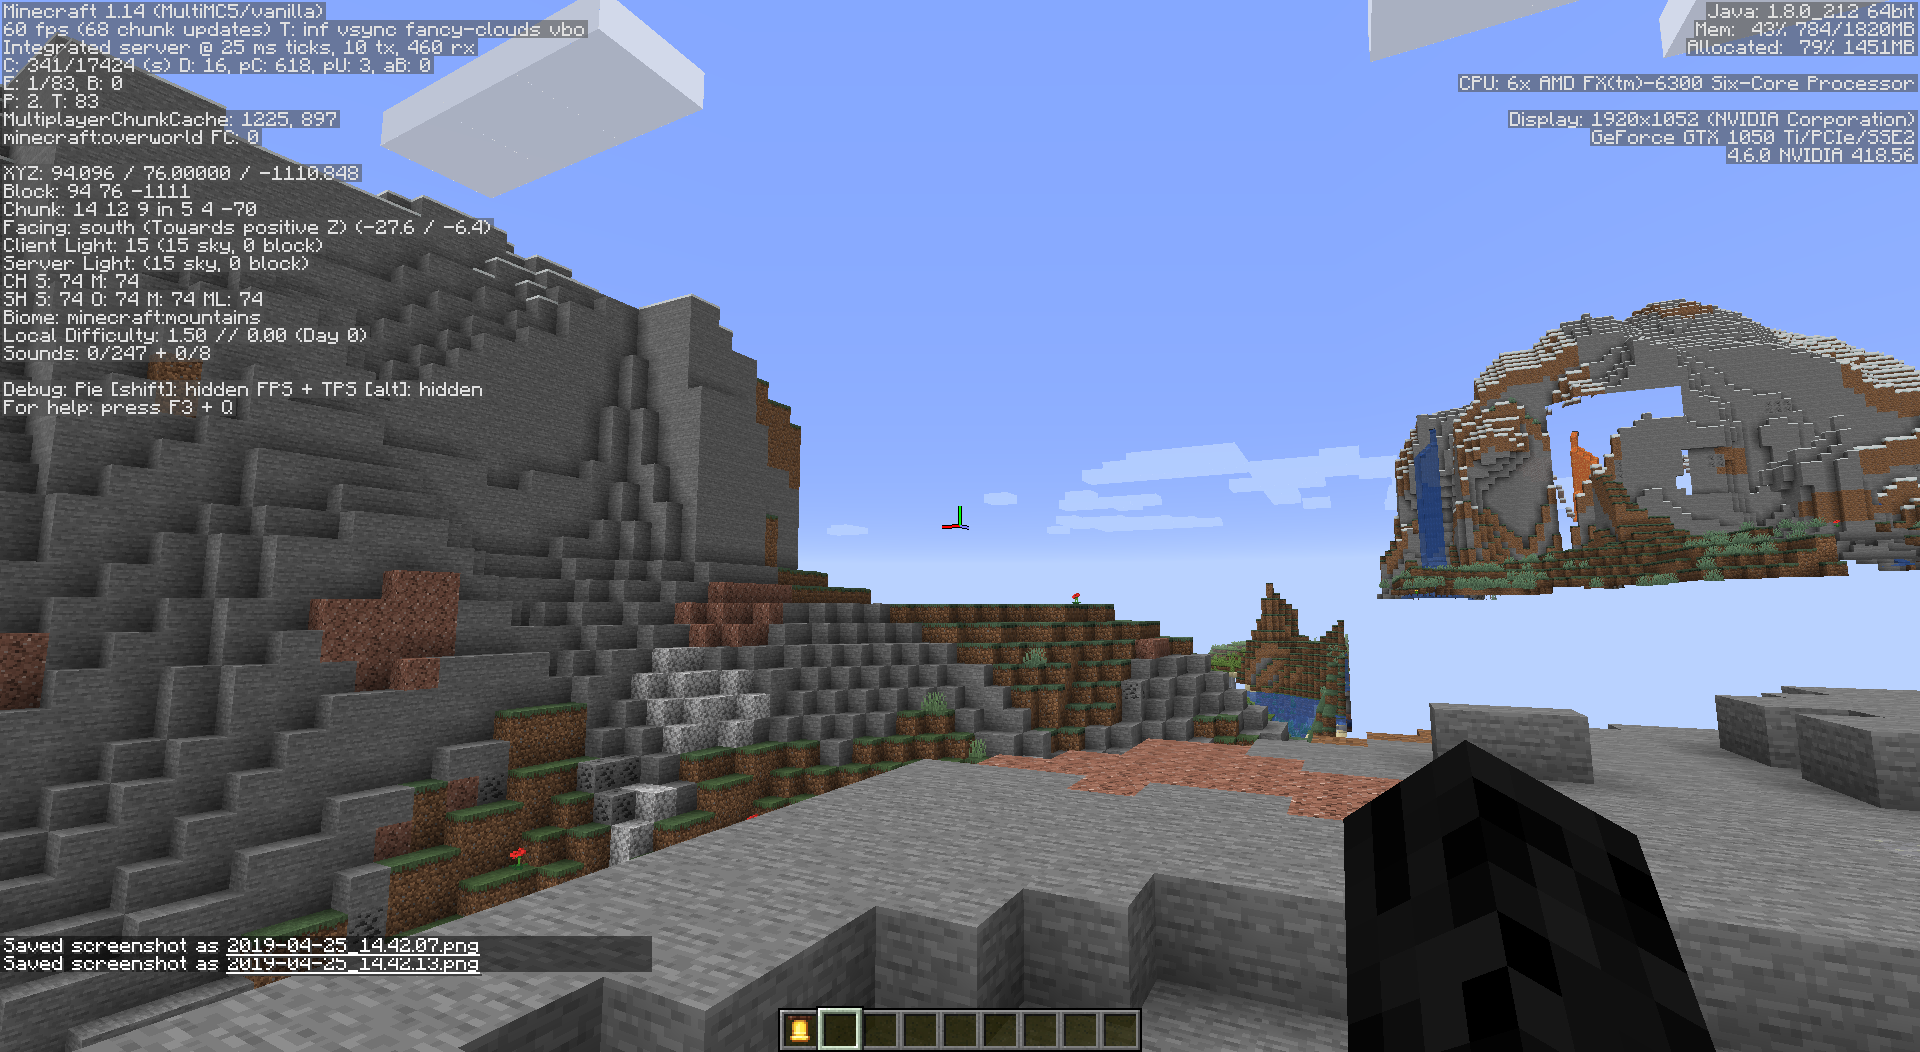 MC-149178] Chunk rendering is extremely slow and random in